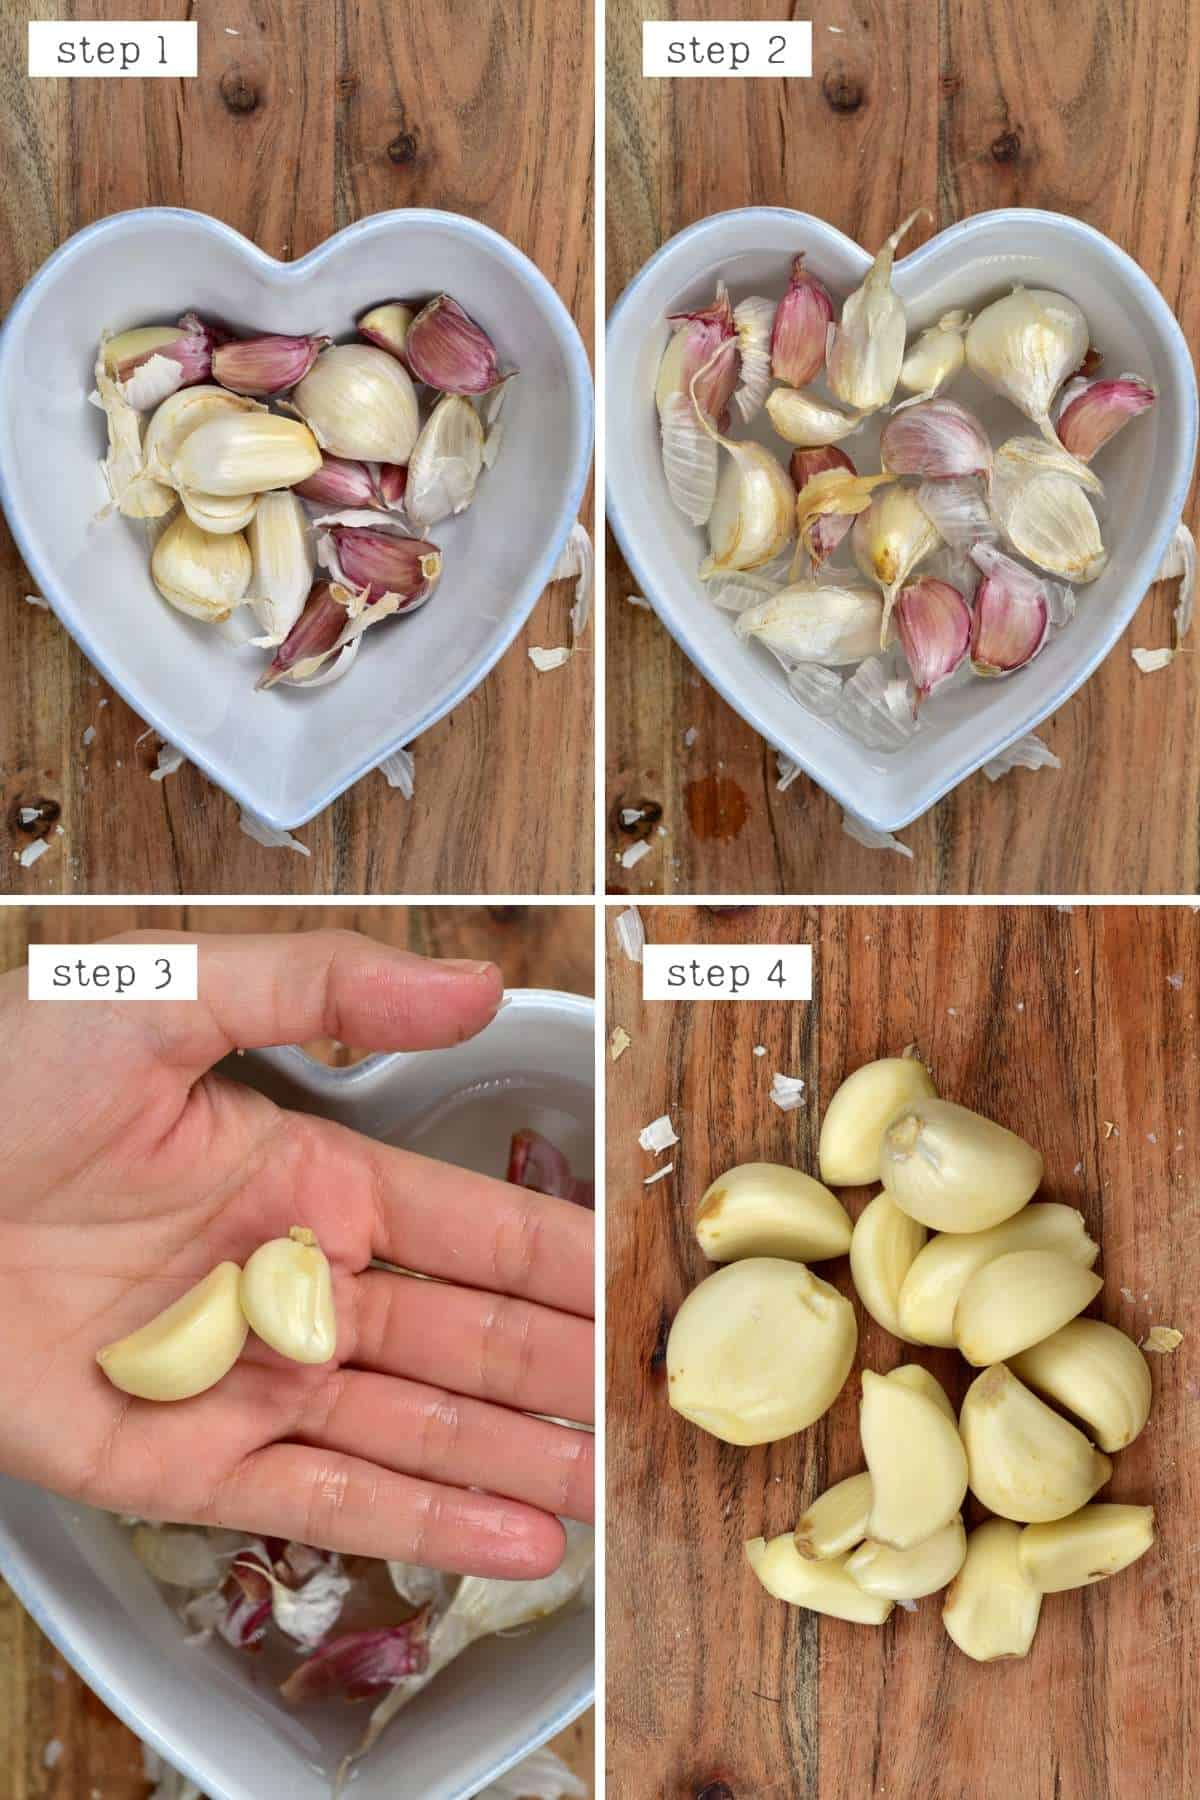 How to peel garlic - Method 3 with hot water